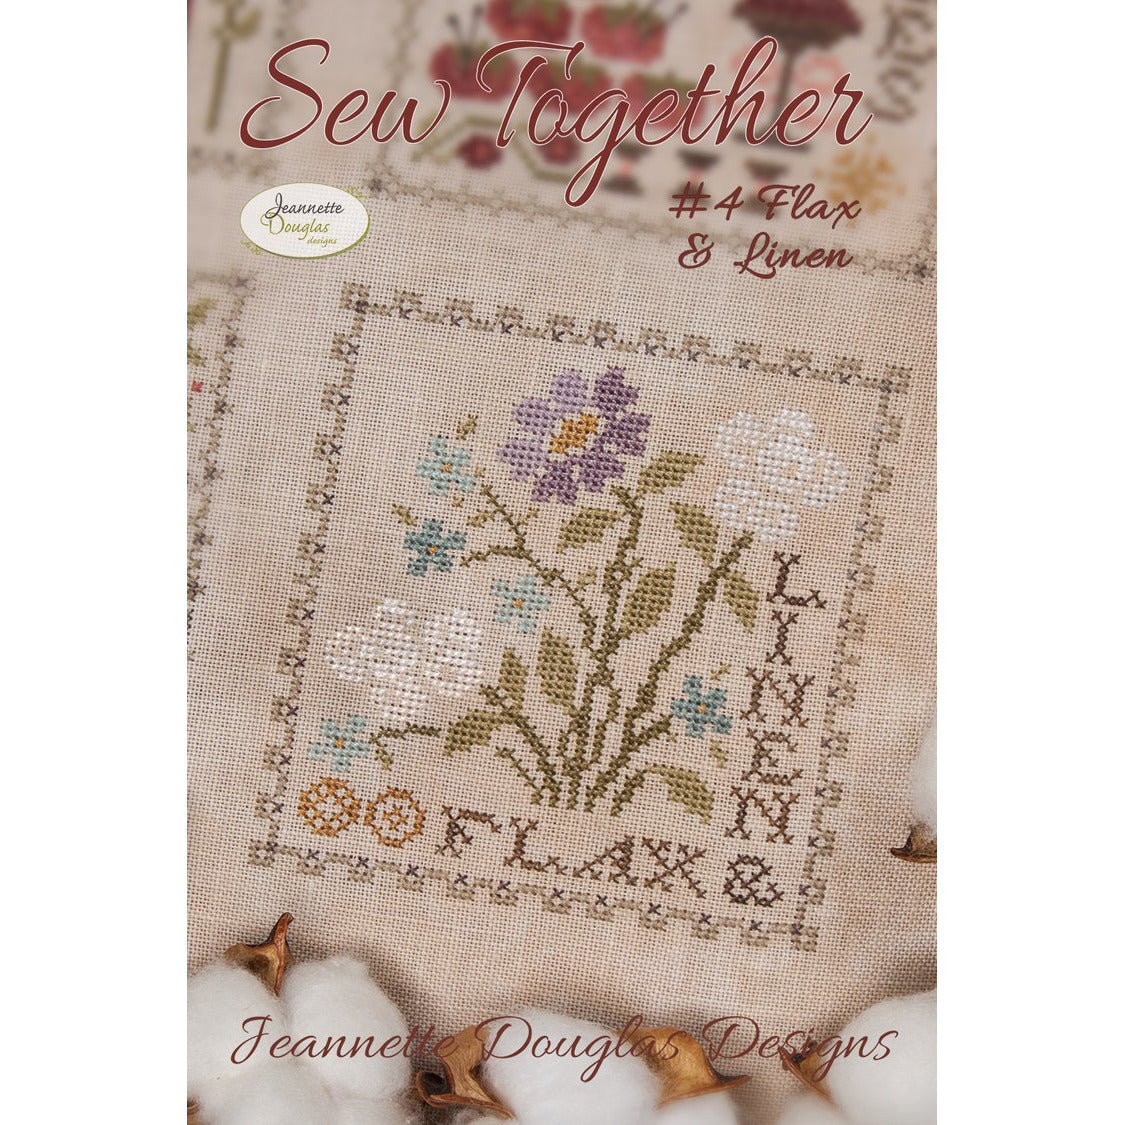 Sew Together #4 Flax & Linen Pattern